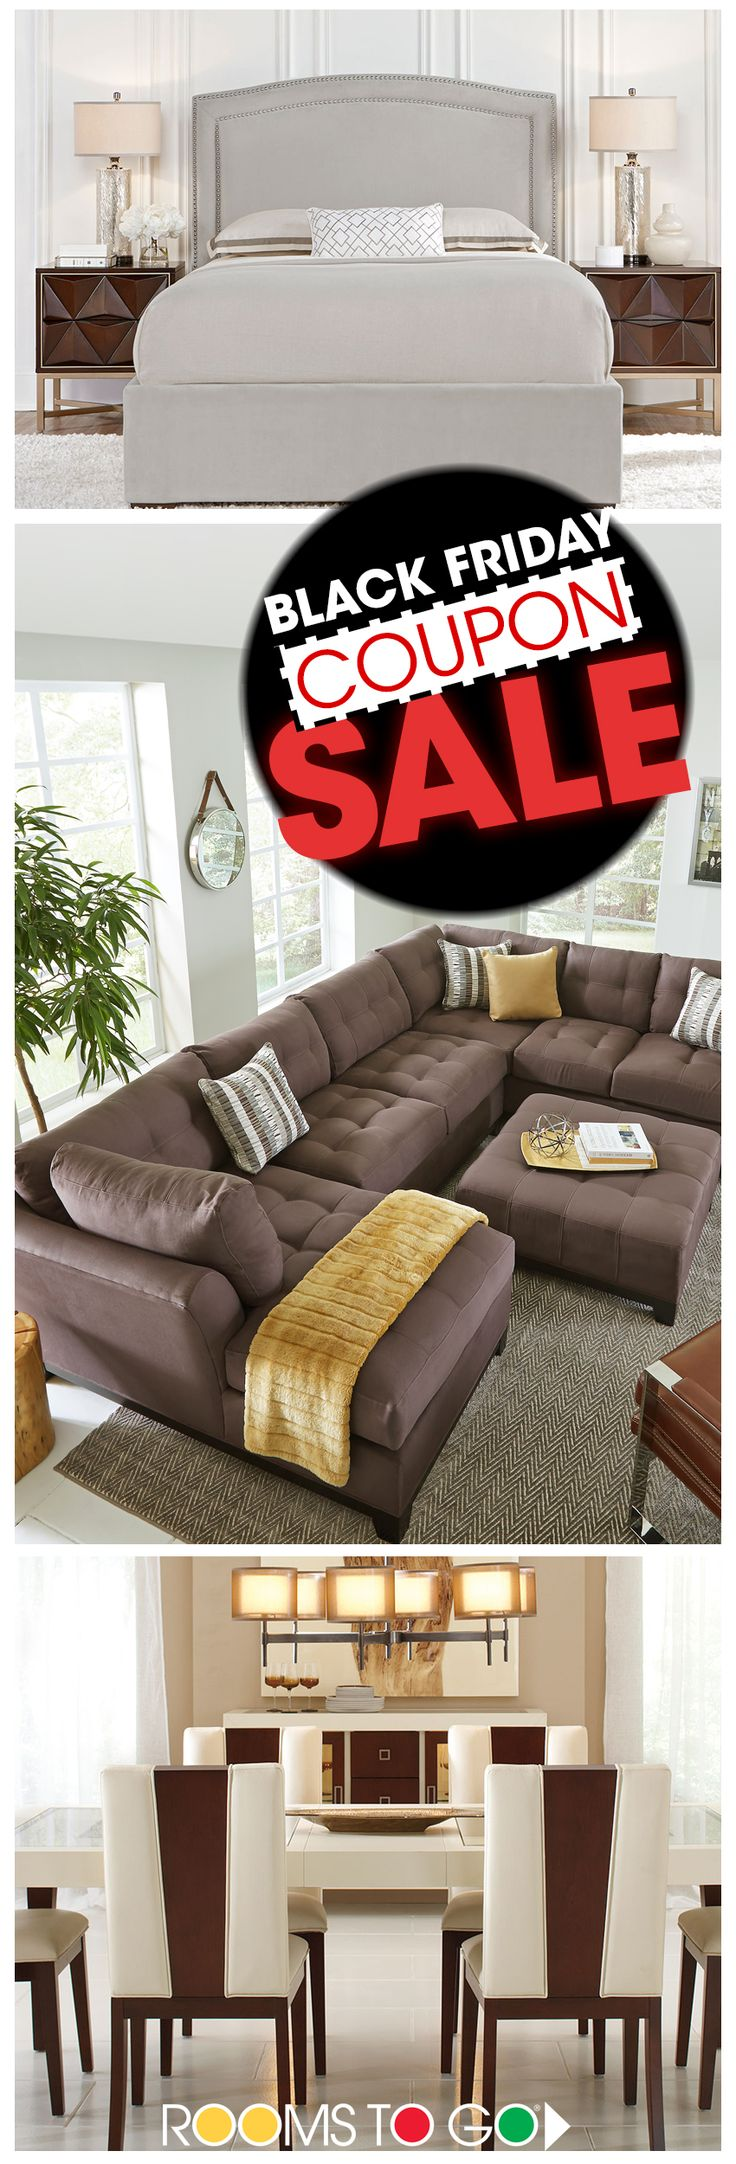 Shop Rooms To Go now during our Holiday Sale  and don t miss out  Furniture  RefinishingHoliday SalesBlack FridayHome. 168 best Lovely Living Spaces images on Pinterest